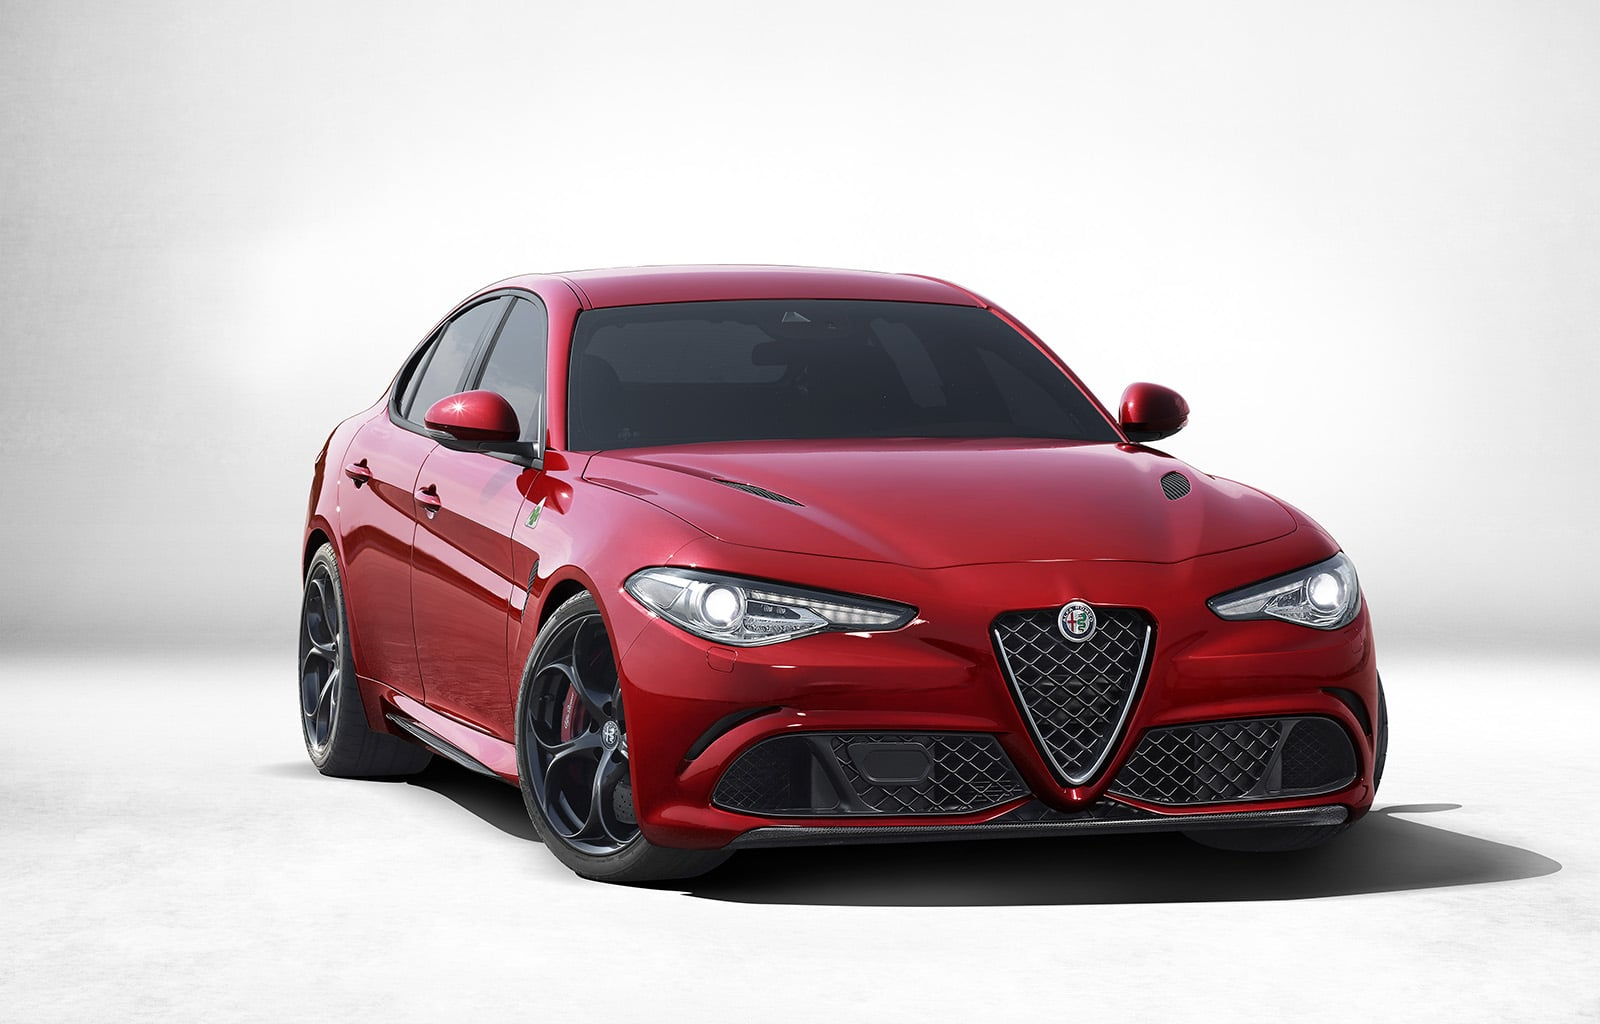 L'Alfa Romeo Giulia QV capable d'atteindre plus de 320 km/h ?